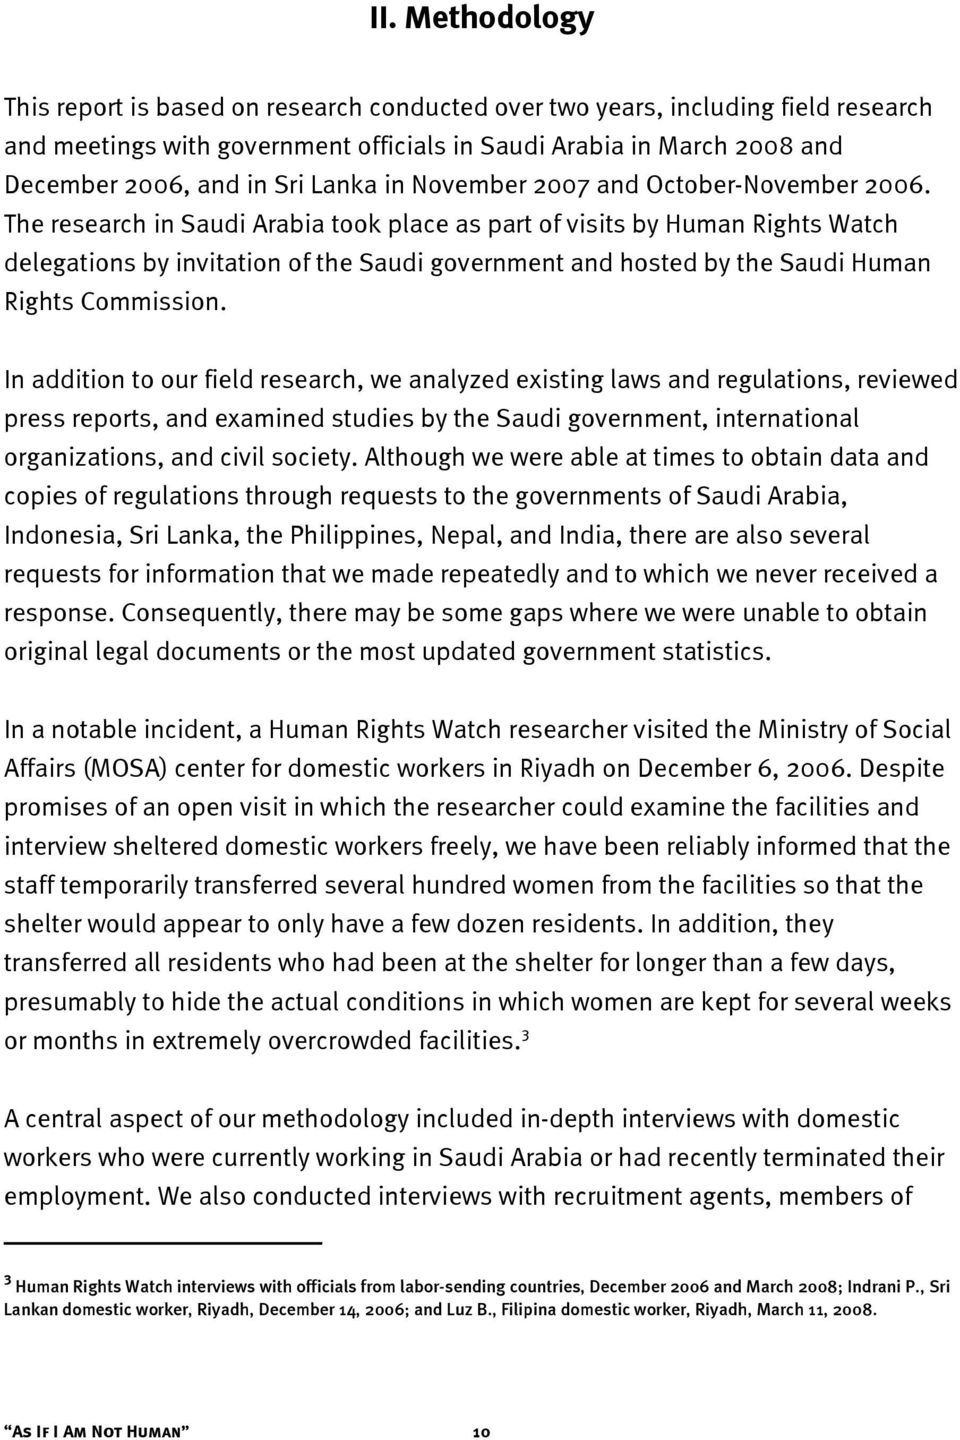 The research in Saudi Arabia took place as part of visits by Human Rights Watch delegations by invitation of the Saudi government and hosted by the Saudi Human Rights Commission.